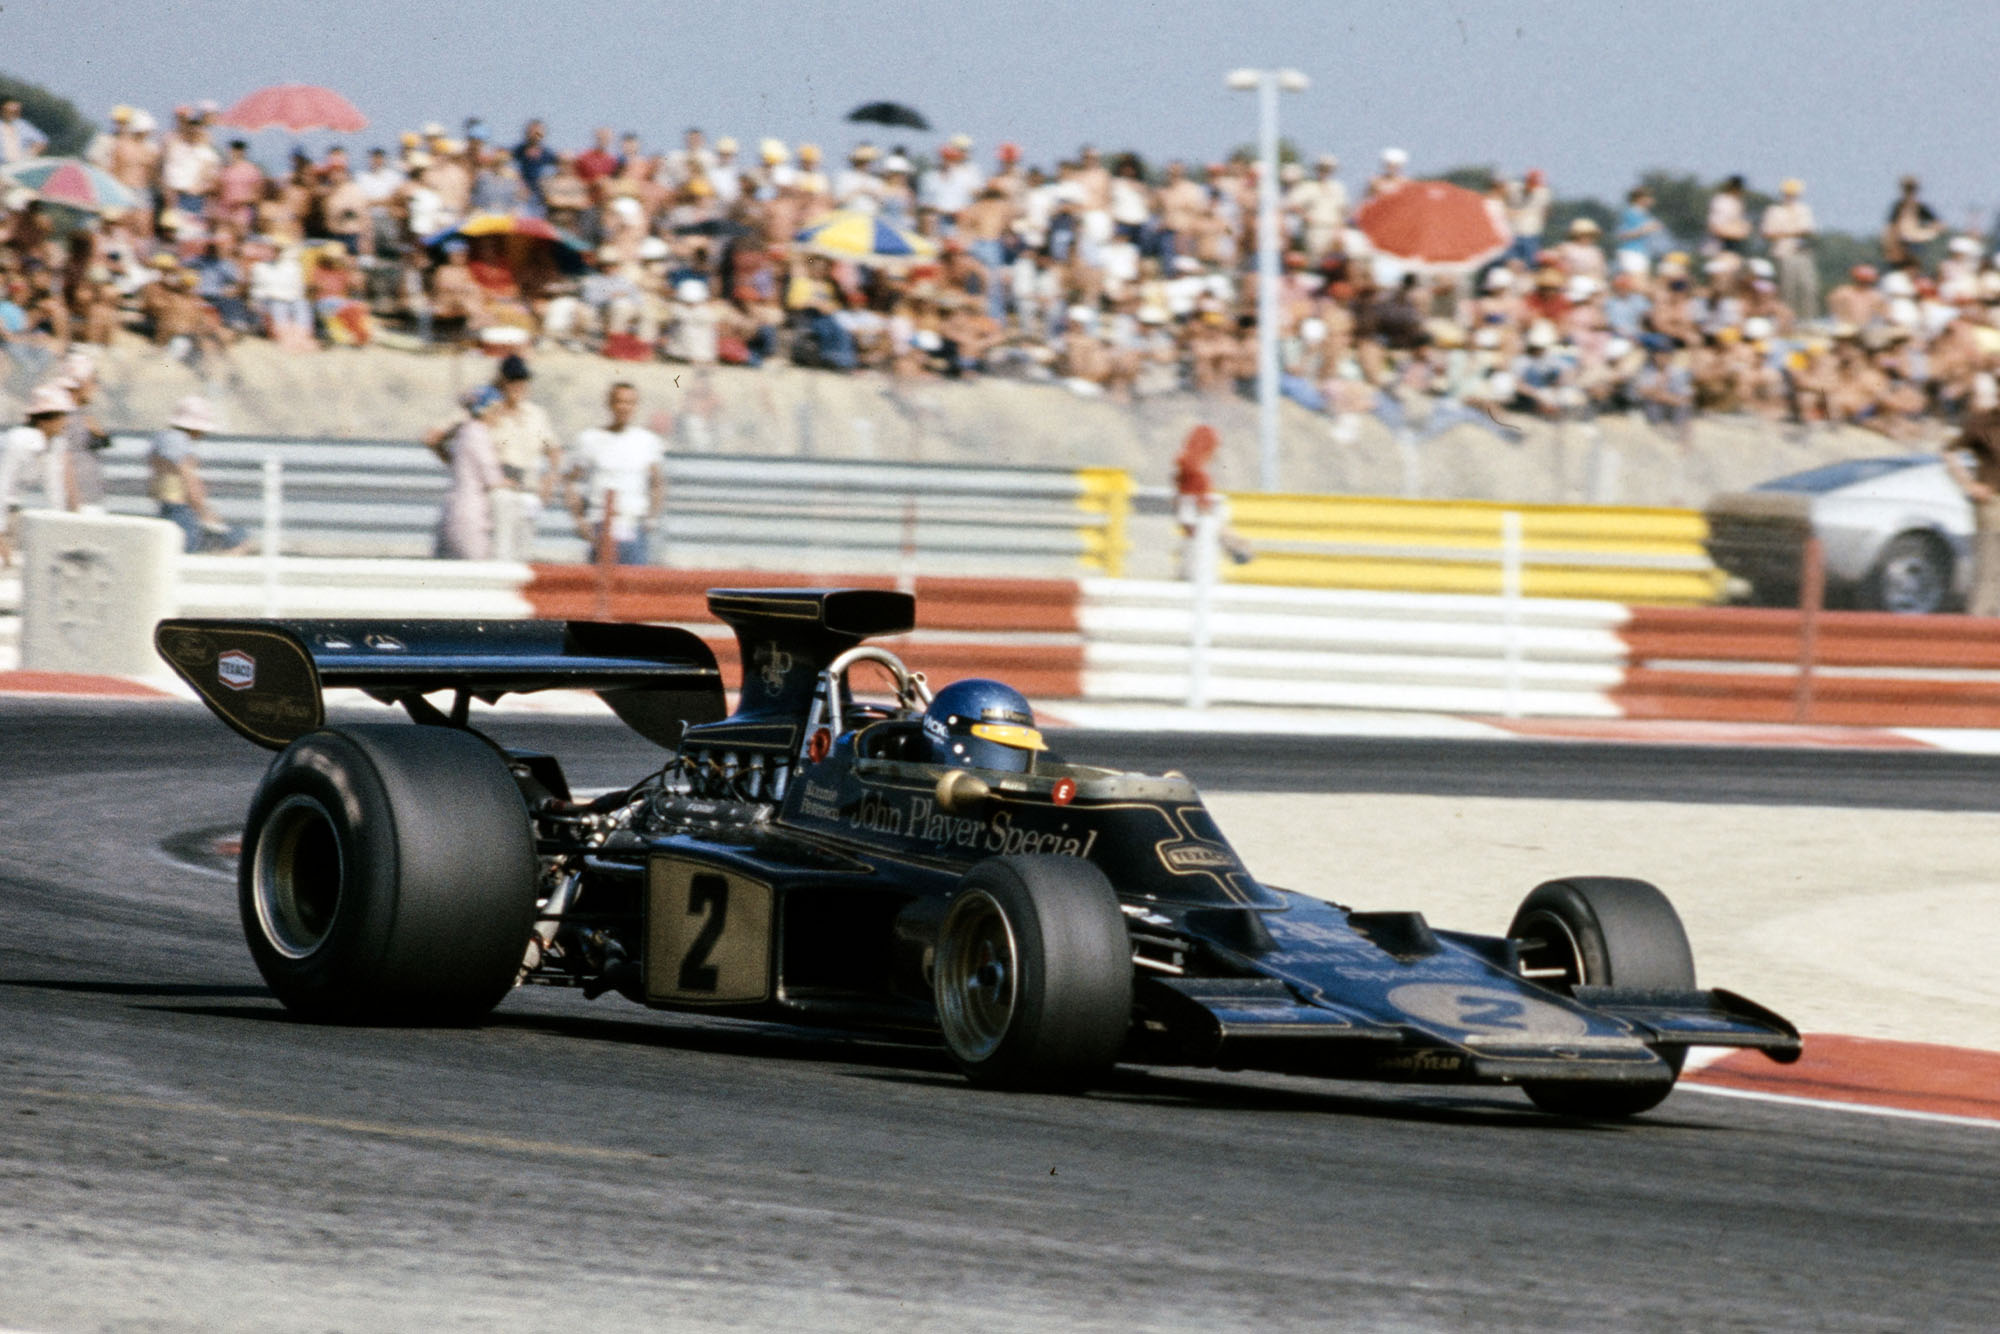 Ronnie Peterson driving at the 1973 French Grand Prix.